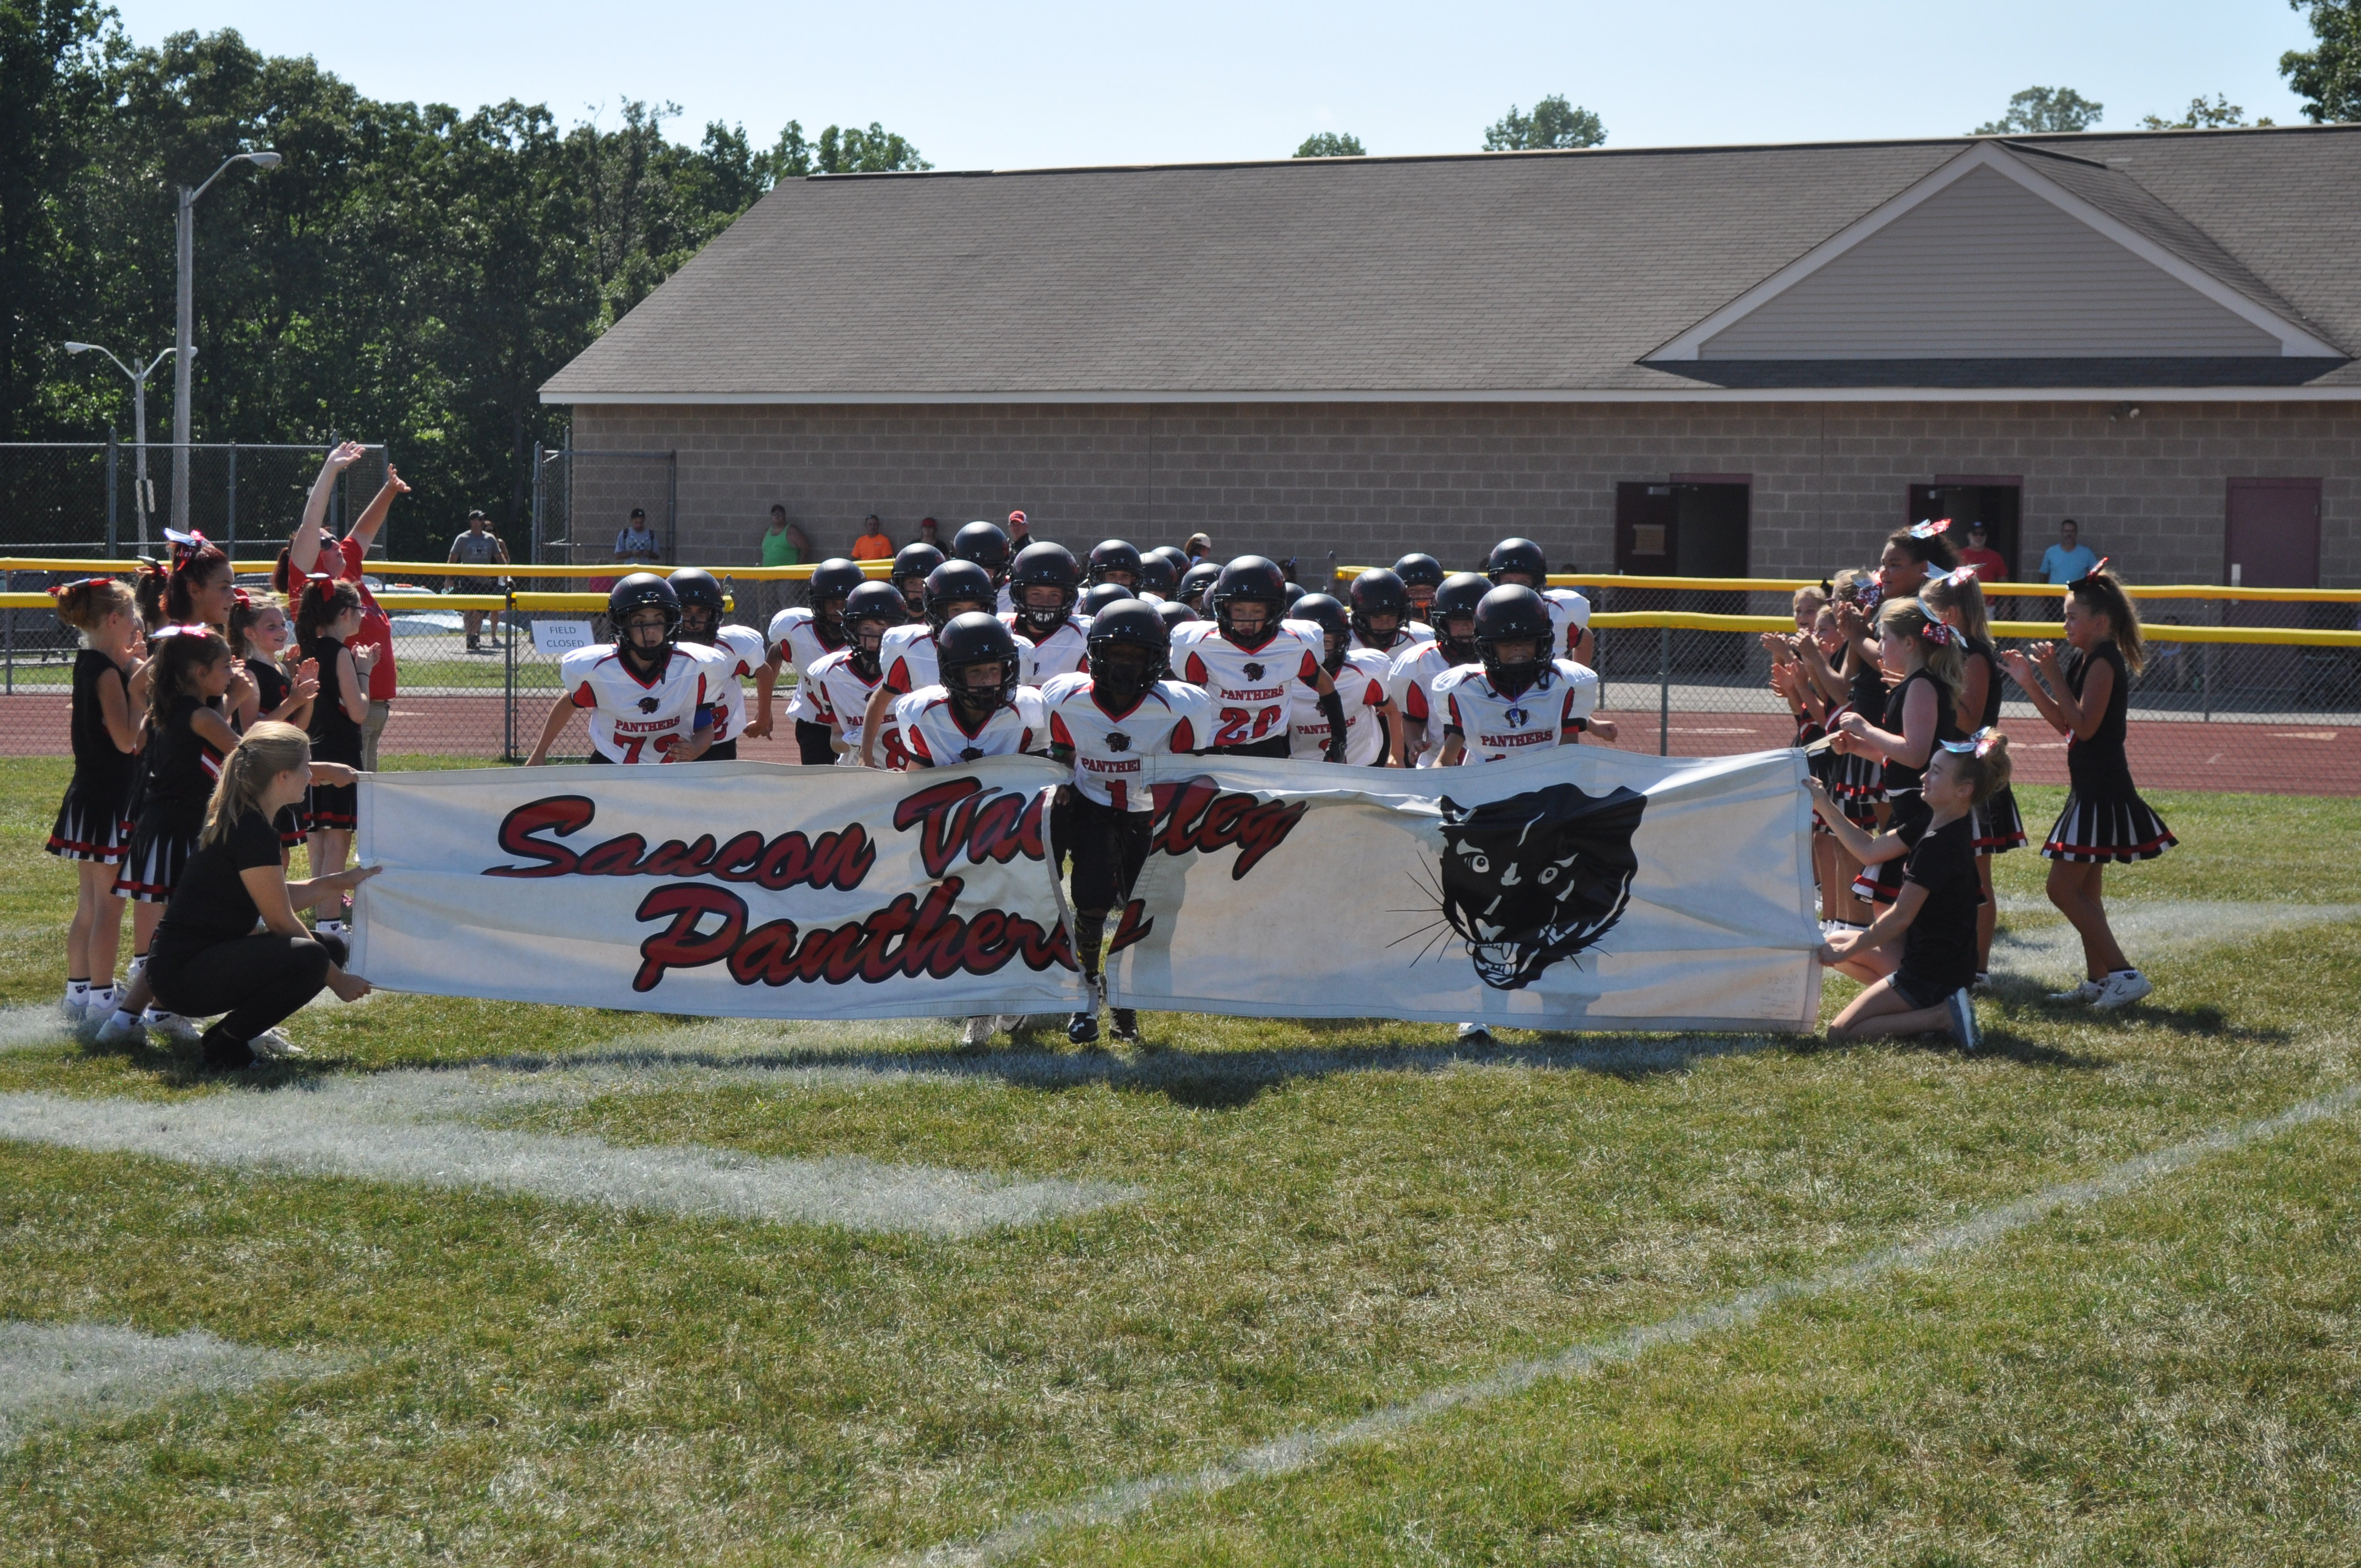 The Panthers take the field!